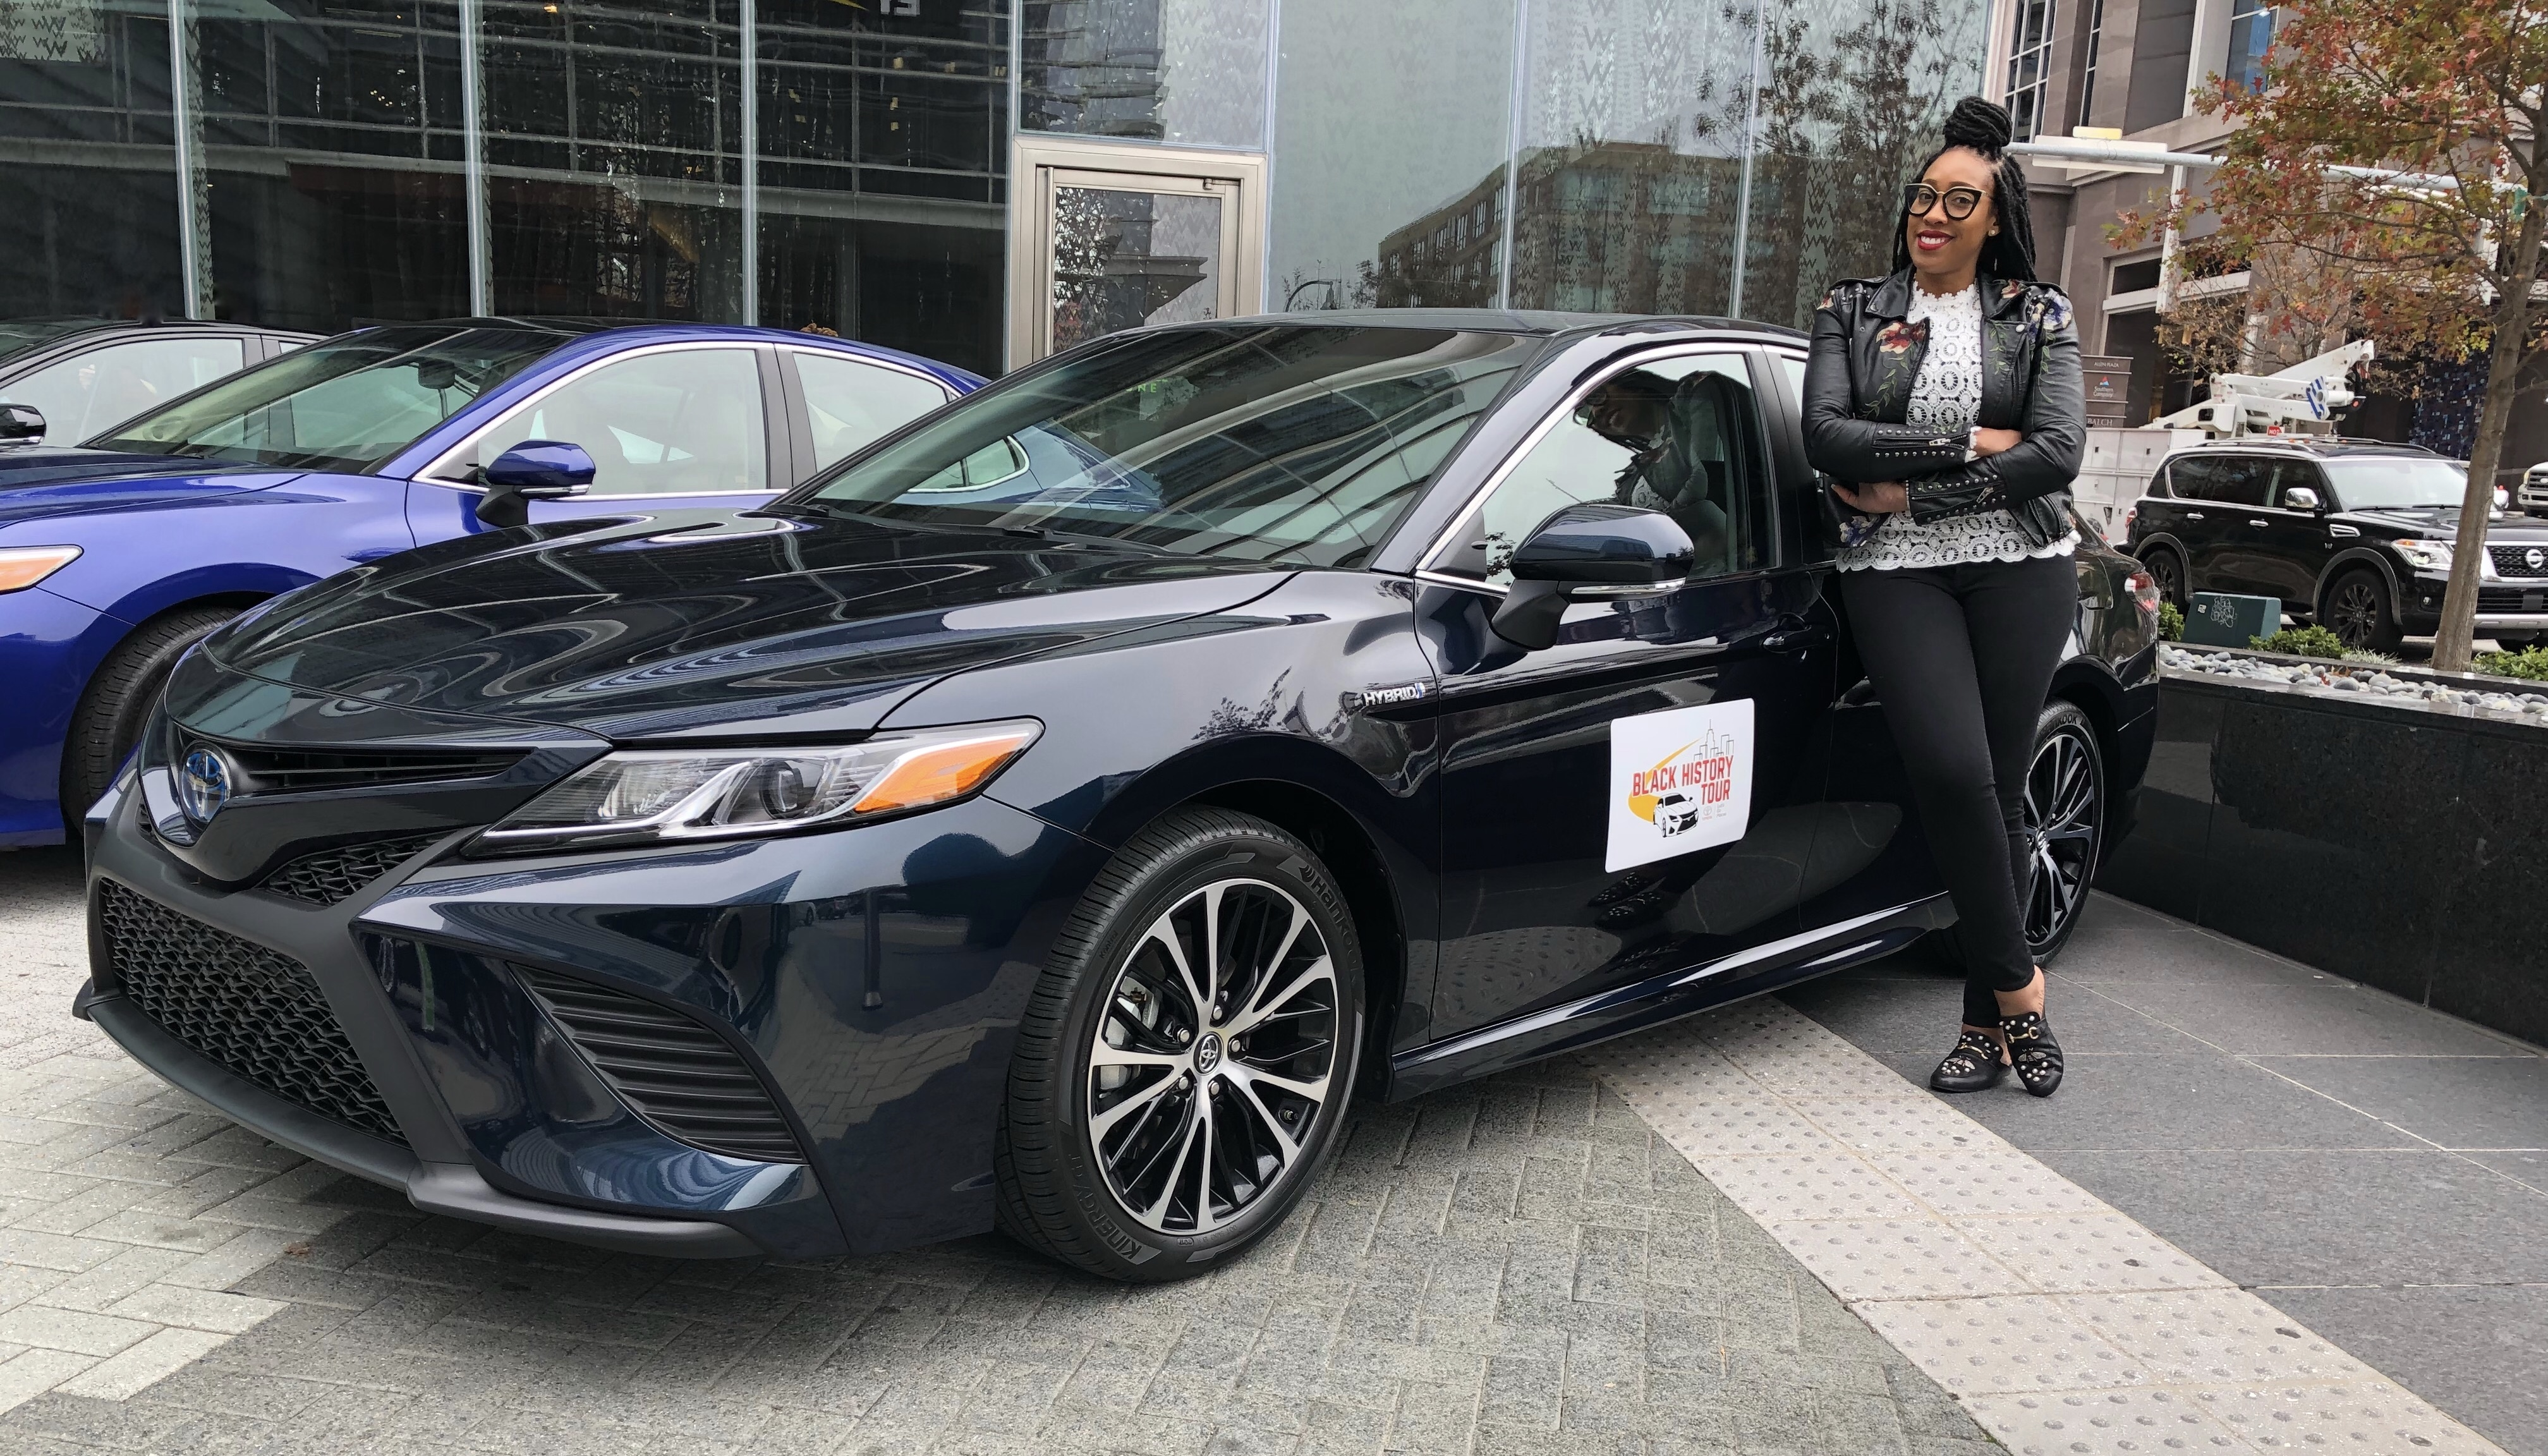 Why Wait Til February? Toyota Celebrates Black Excellence All Year Long!